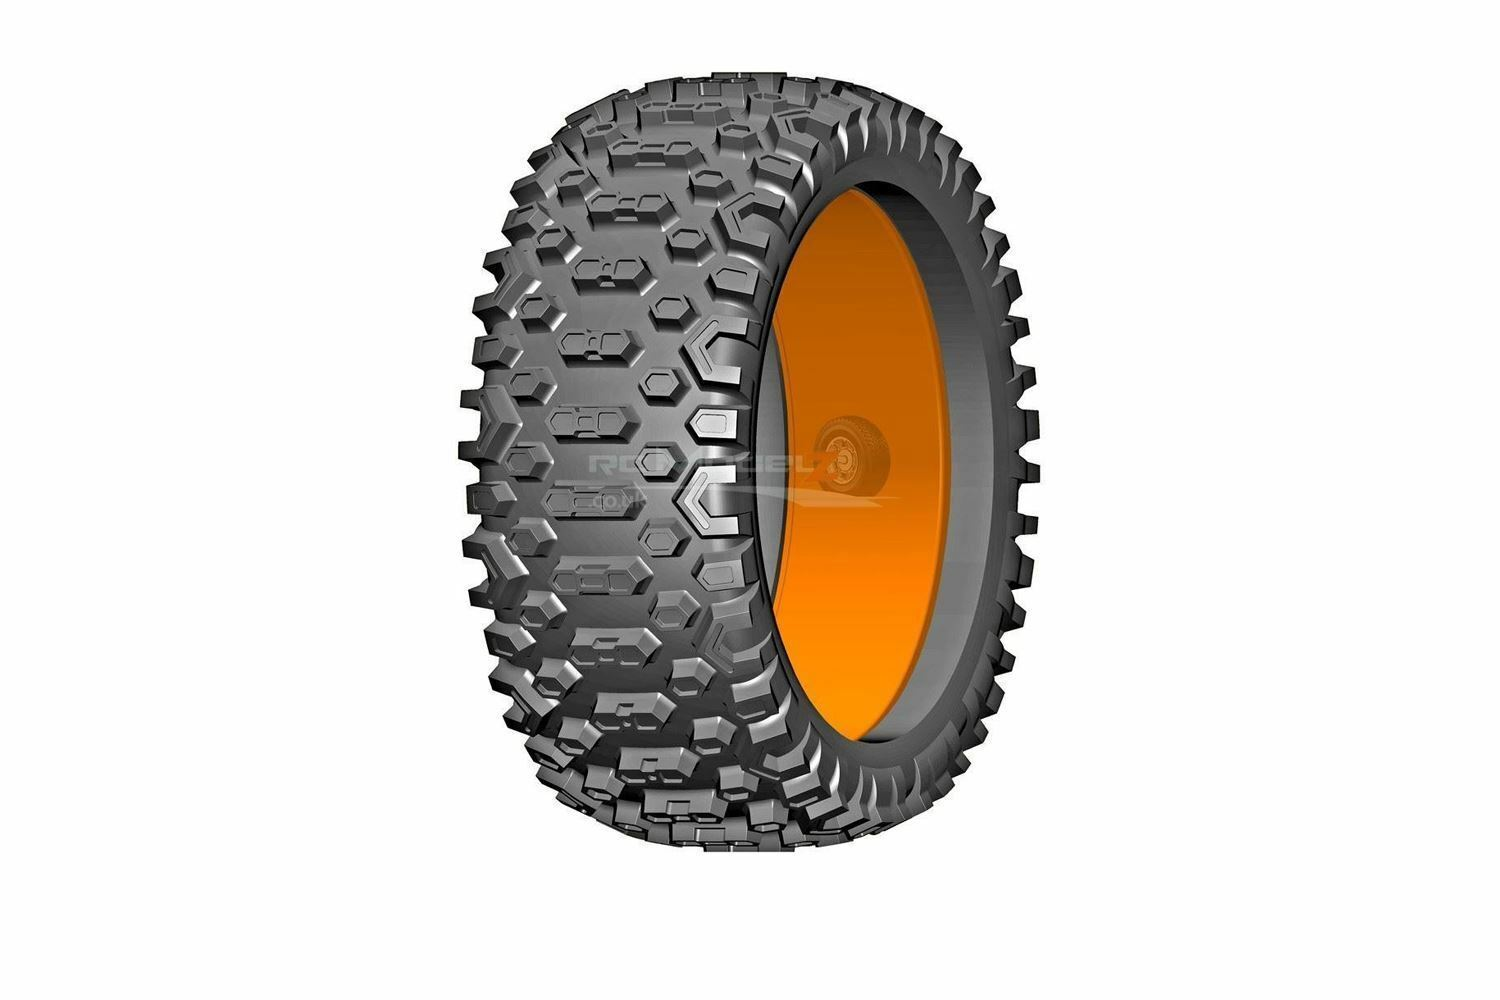 BU-BIG CROSS - P3 Medium Donut Tyre w  insert - 1 Pair